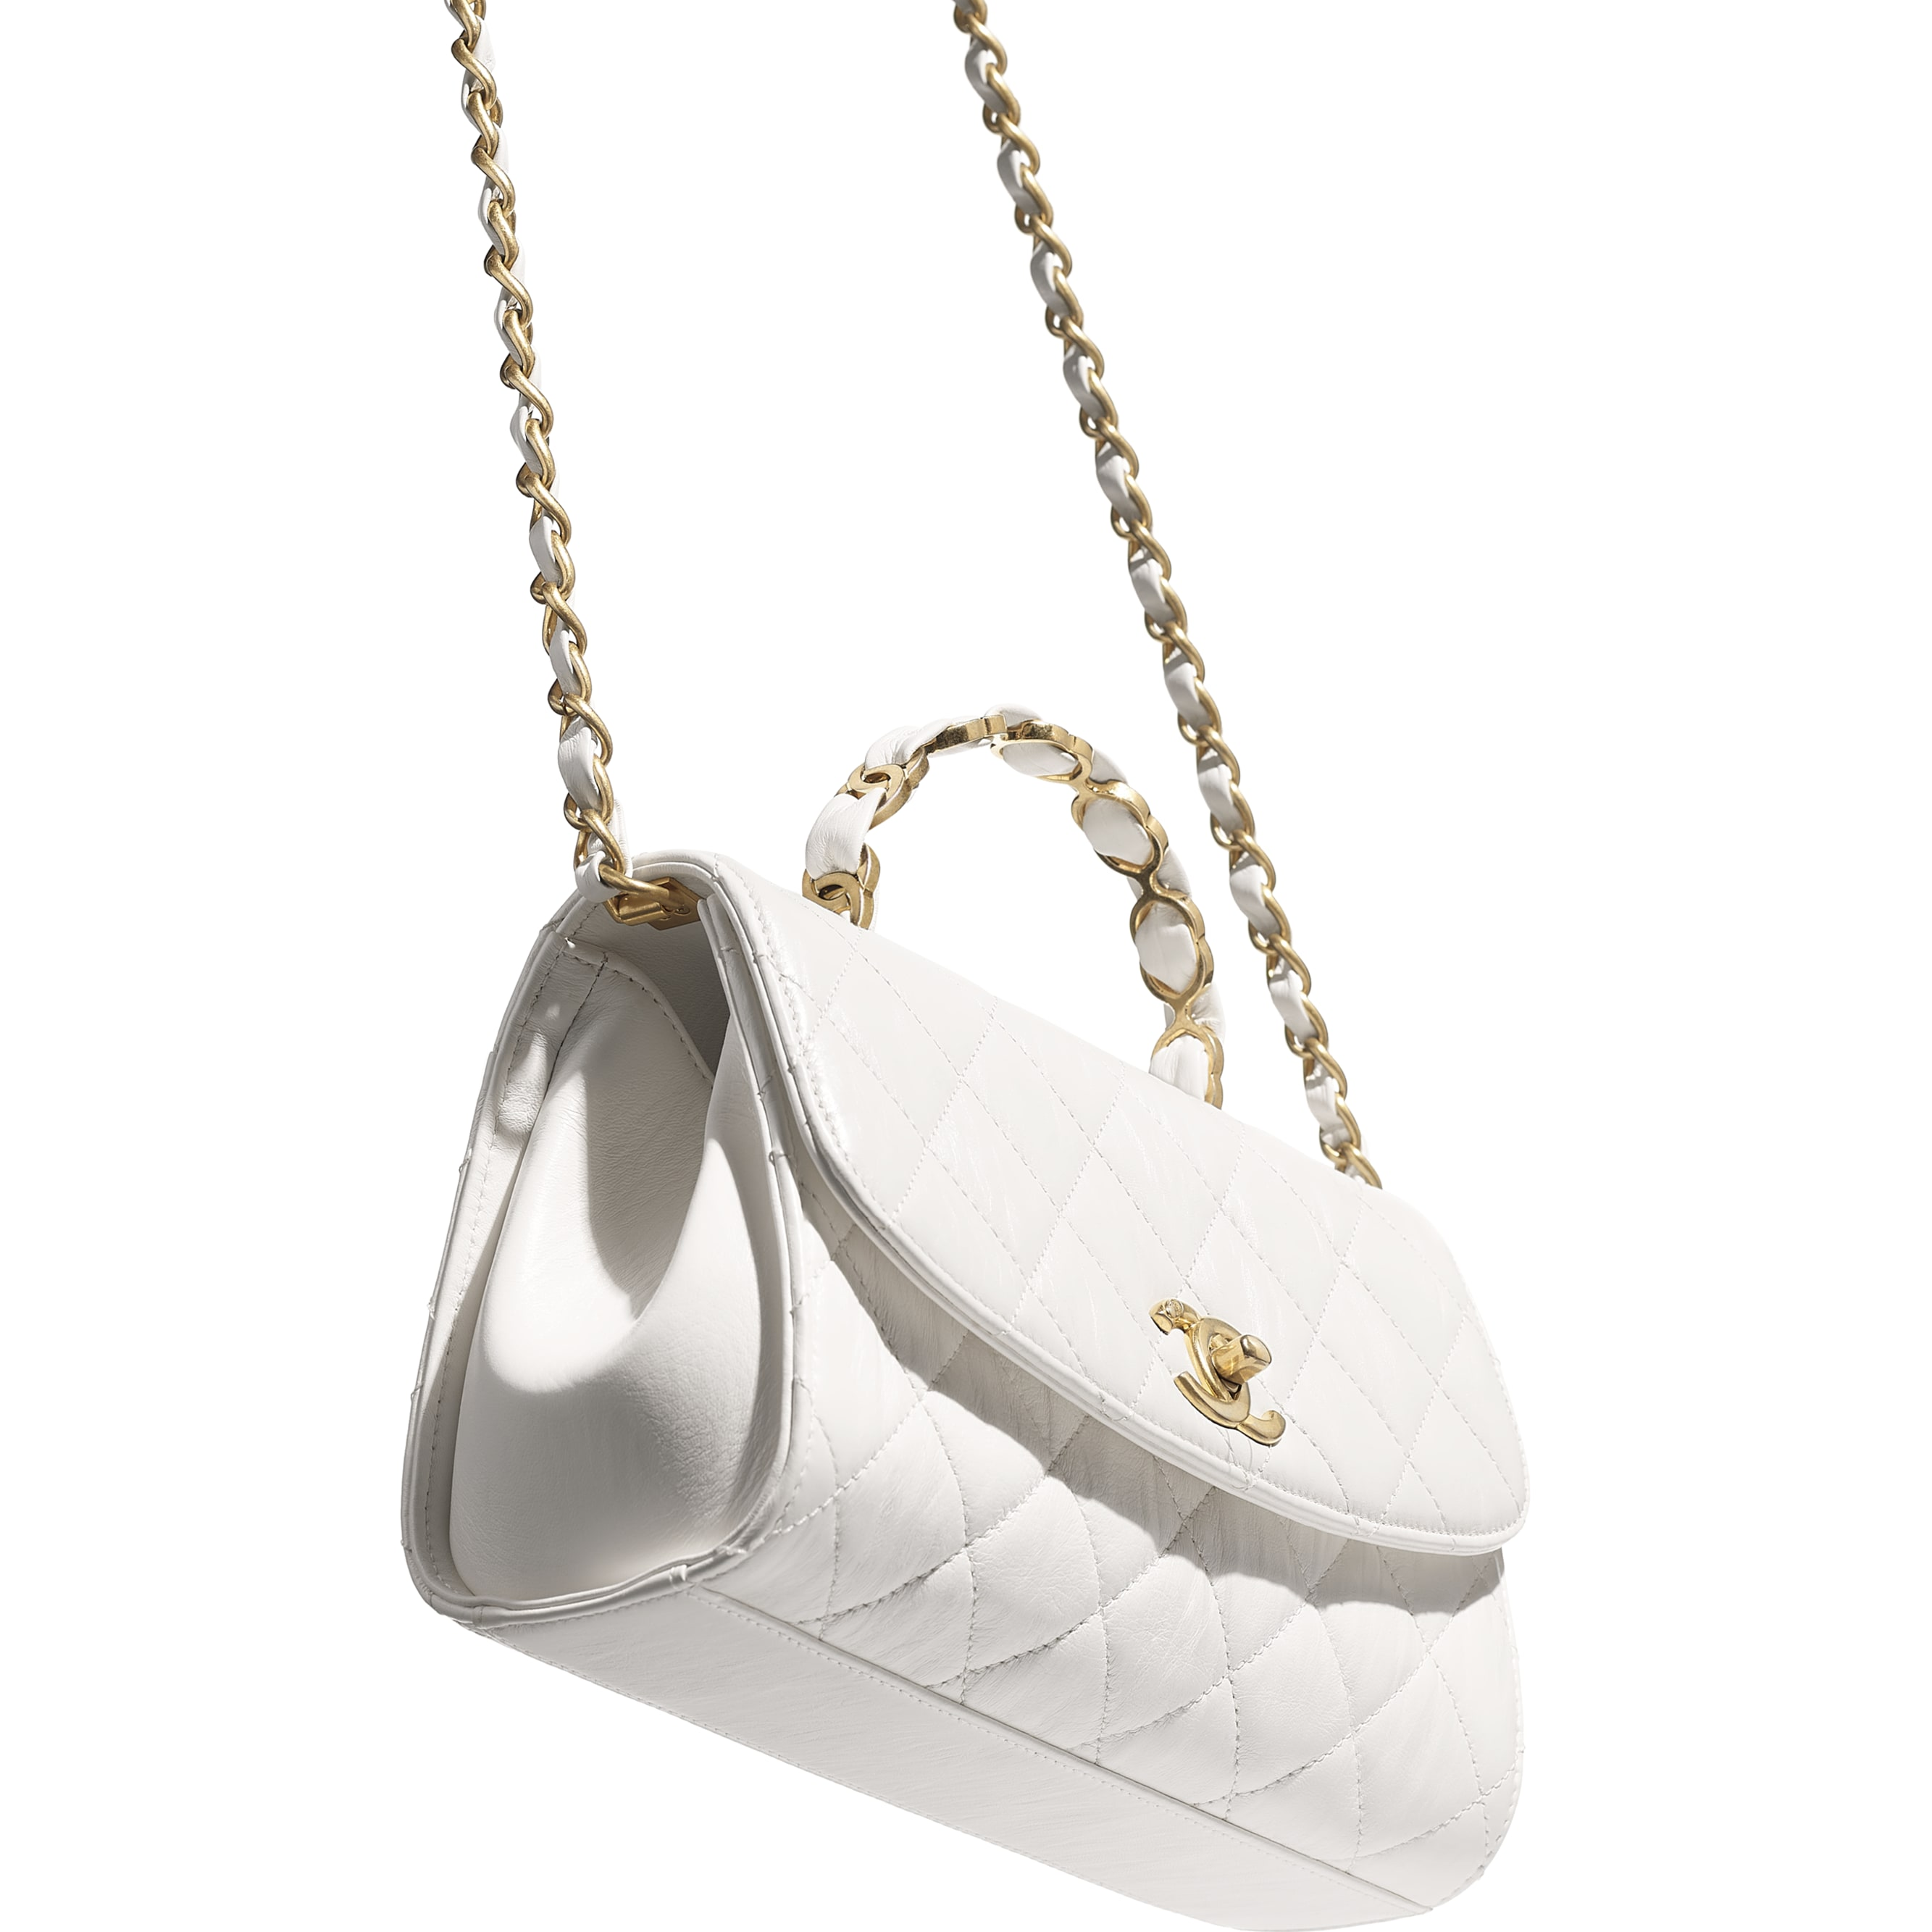 Small Flap Bag With Top Handle - White - Crumpled Lambskin & Gold-Tone Metal - CHANEL - Other view - see standard sized version